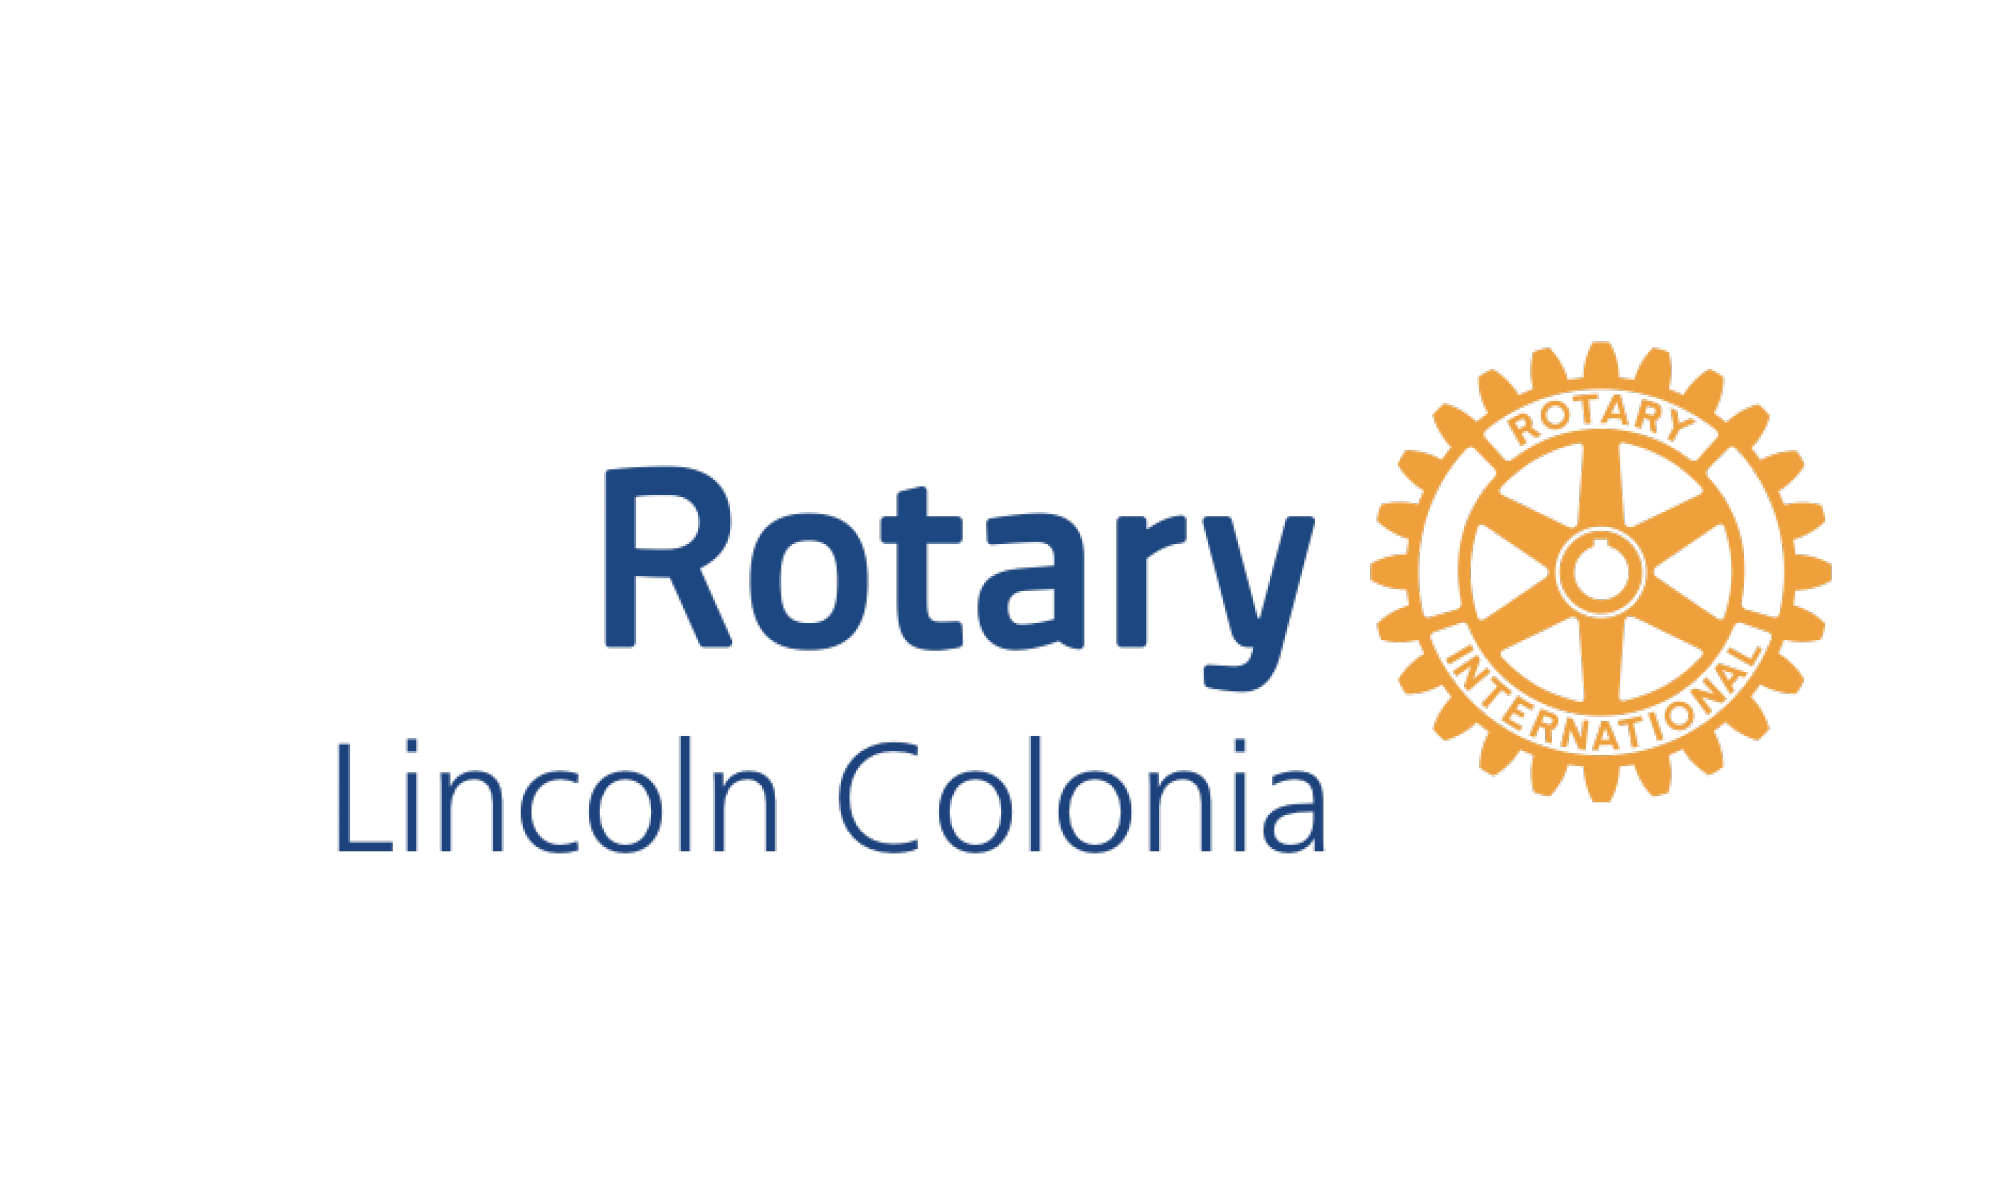 The Rotary Club of Lincoln Colonia